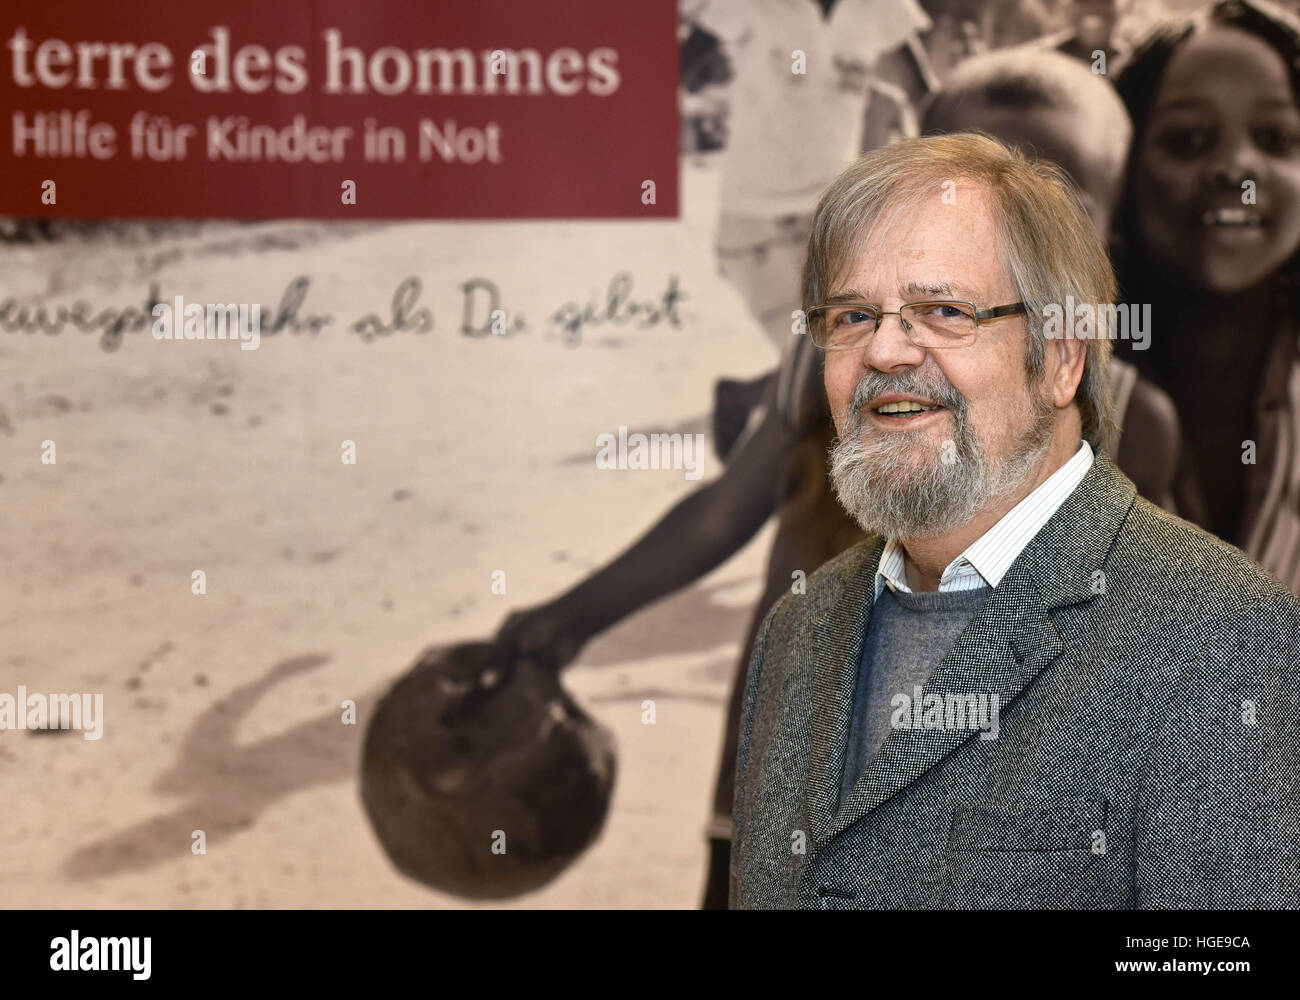 Osnabrueck, Germany. 07th Jan, 2017. Lutz Beisel, the founder of the children's aid organisation terre des hommes - Stock Image